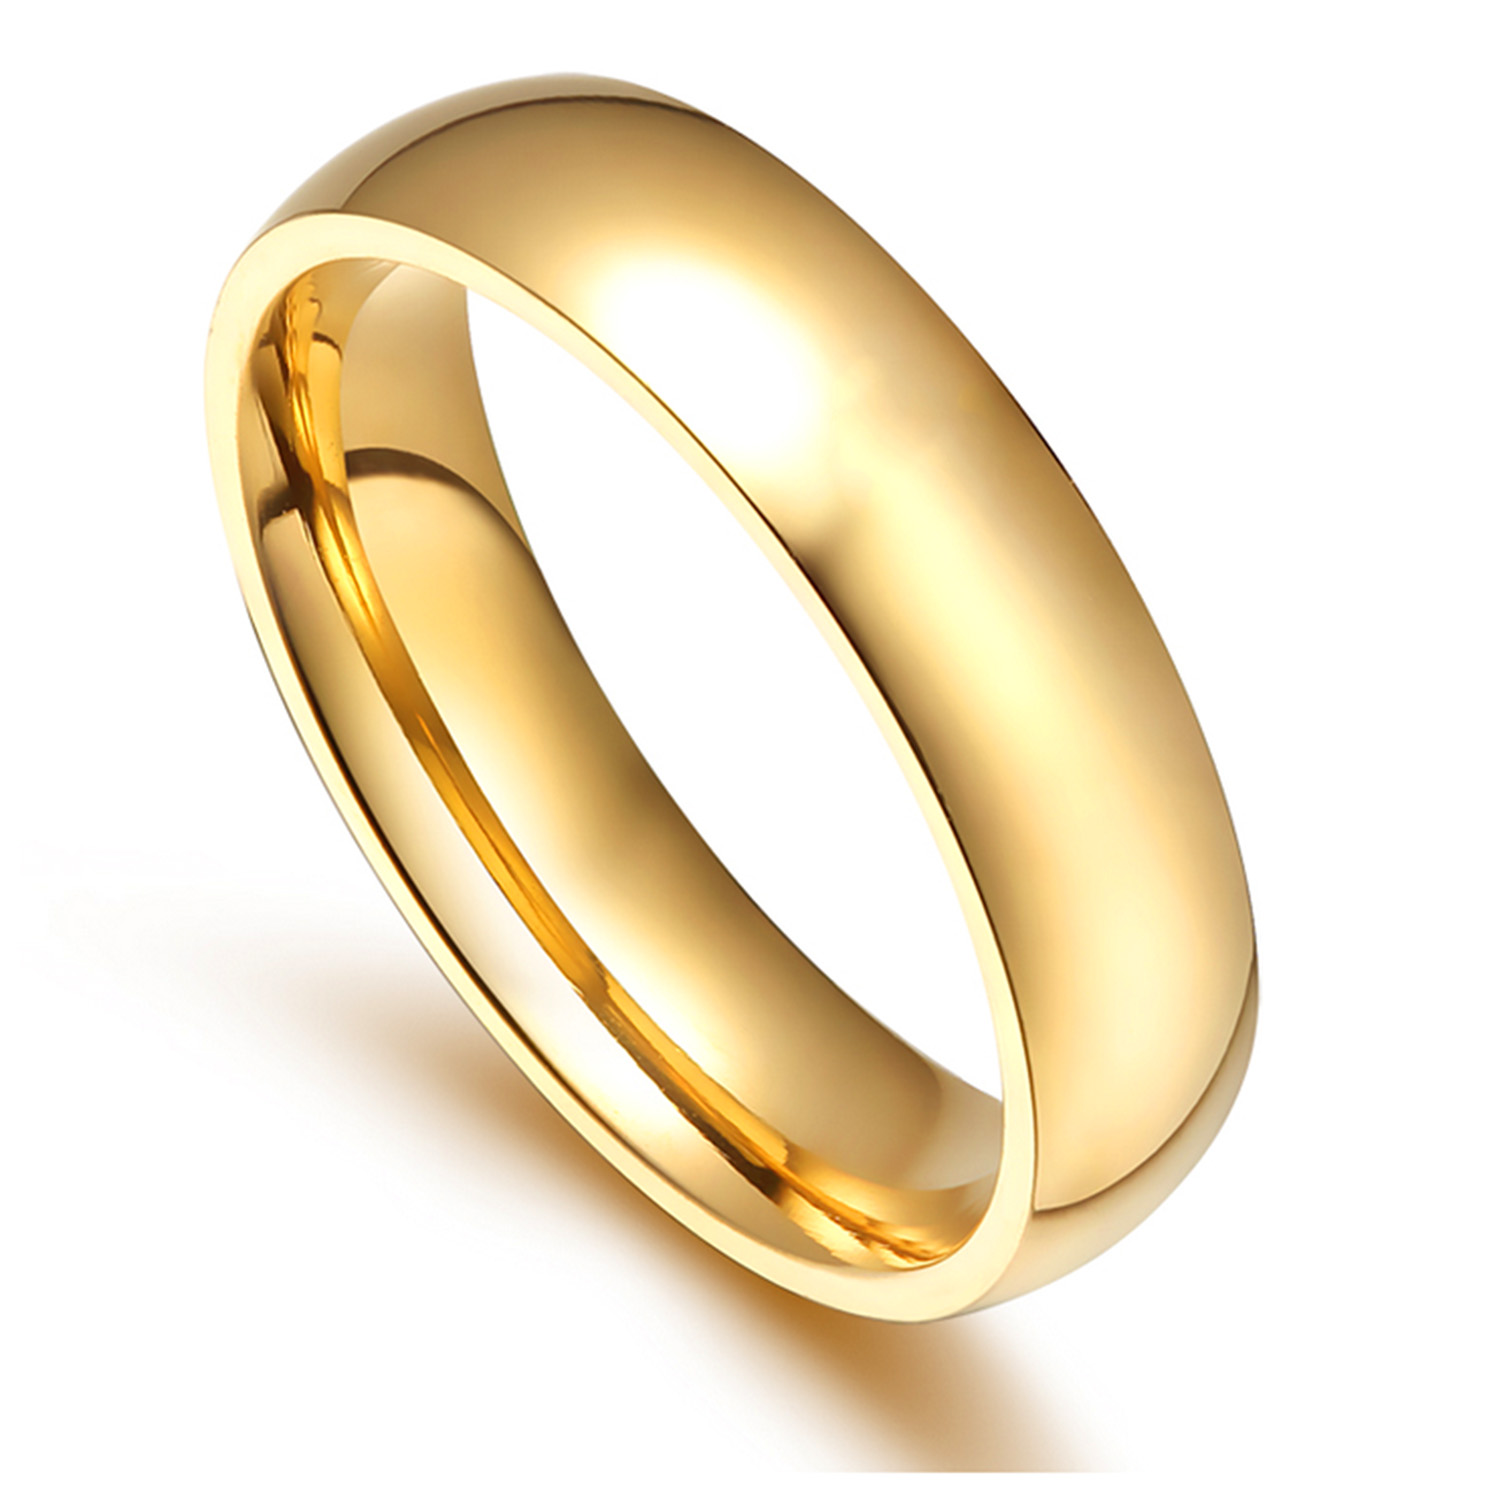 promotion classic wedding ring for men women gold silver color stainless steel metal